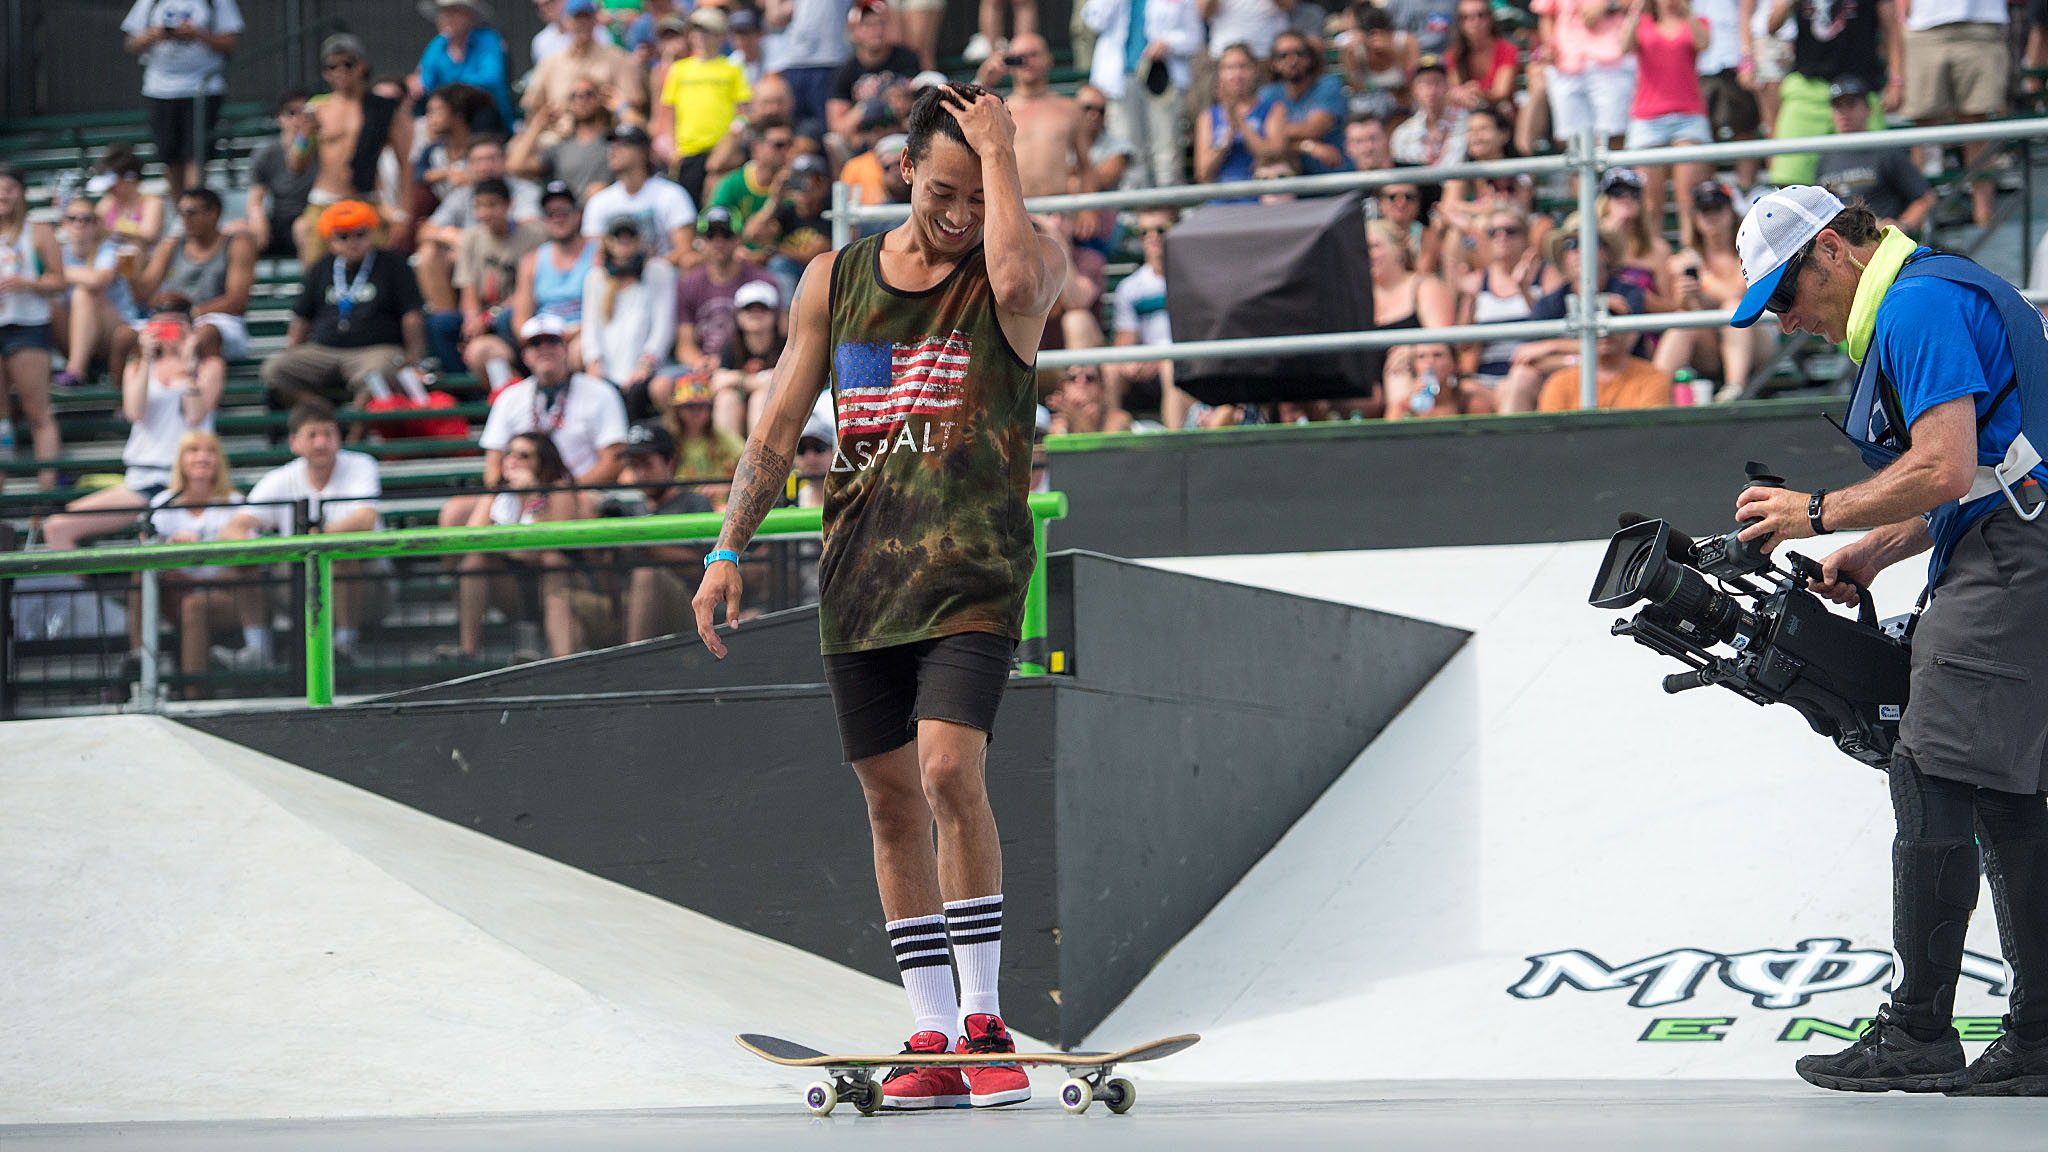 The only person who could beat nyjah s huston s first run score was huston himself